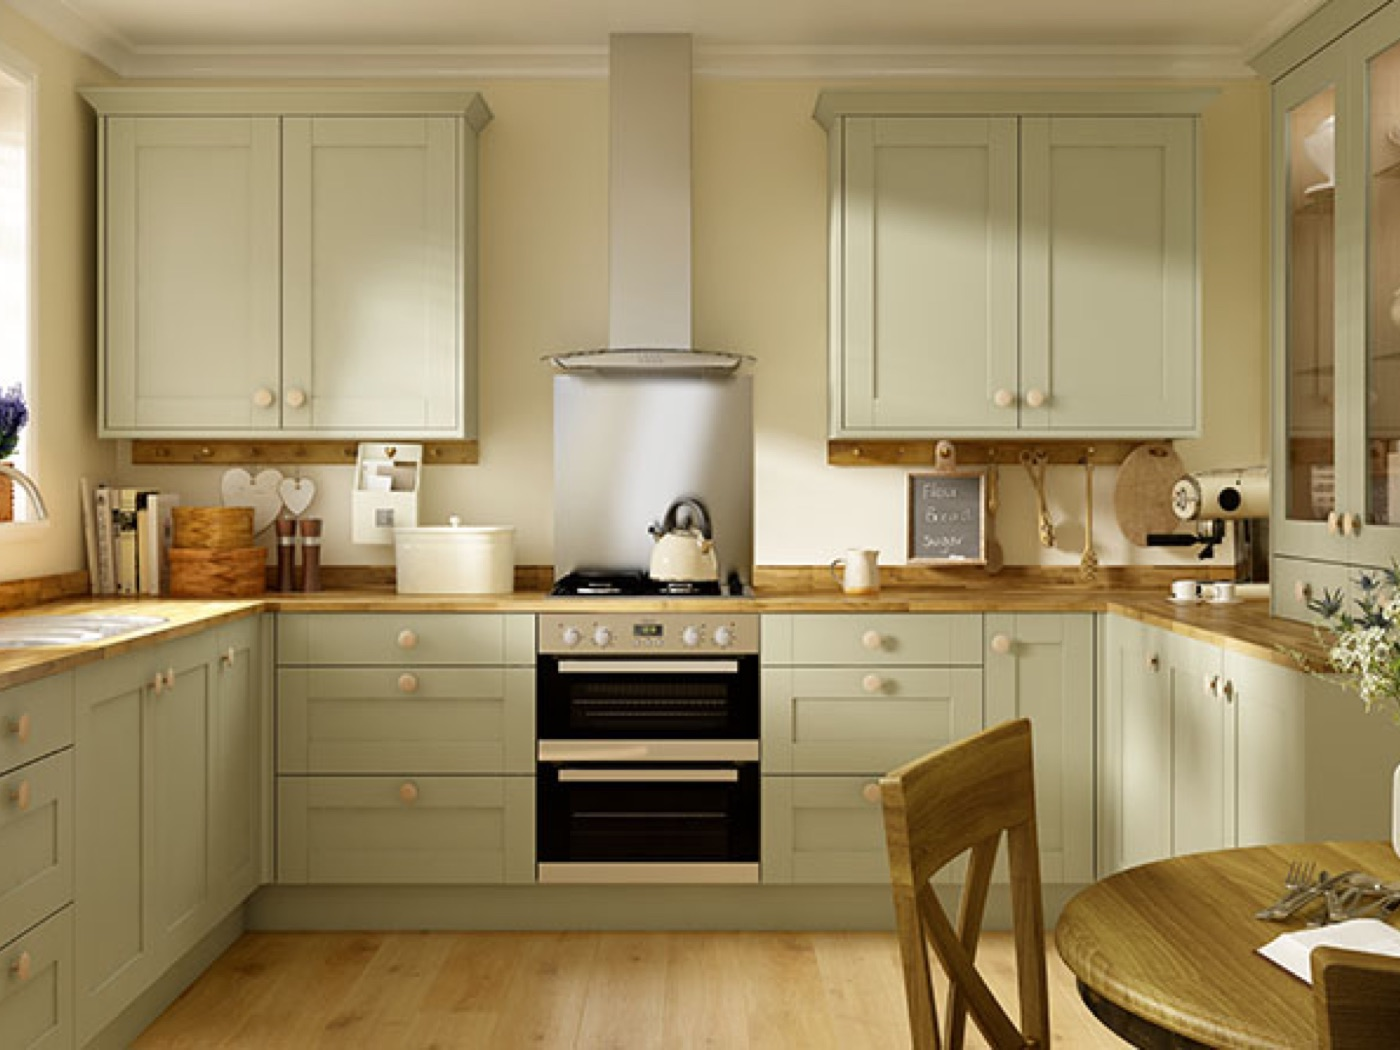 Oxford Olive Green Kitchen Fitted Kitchens Ara